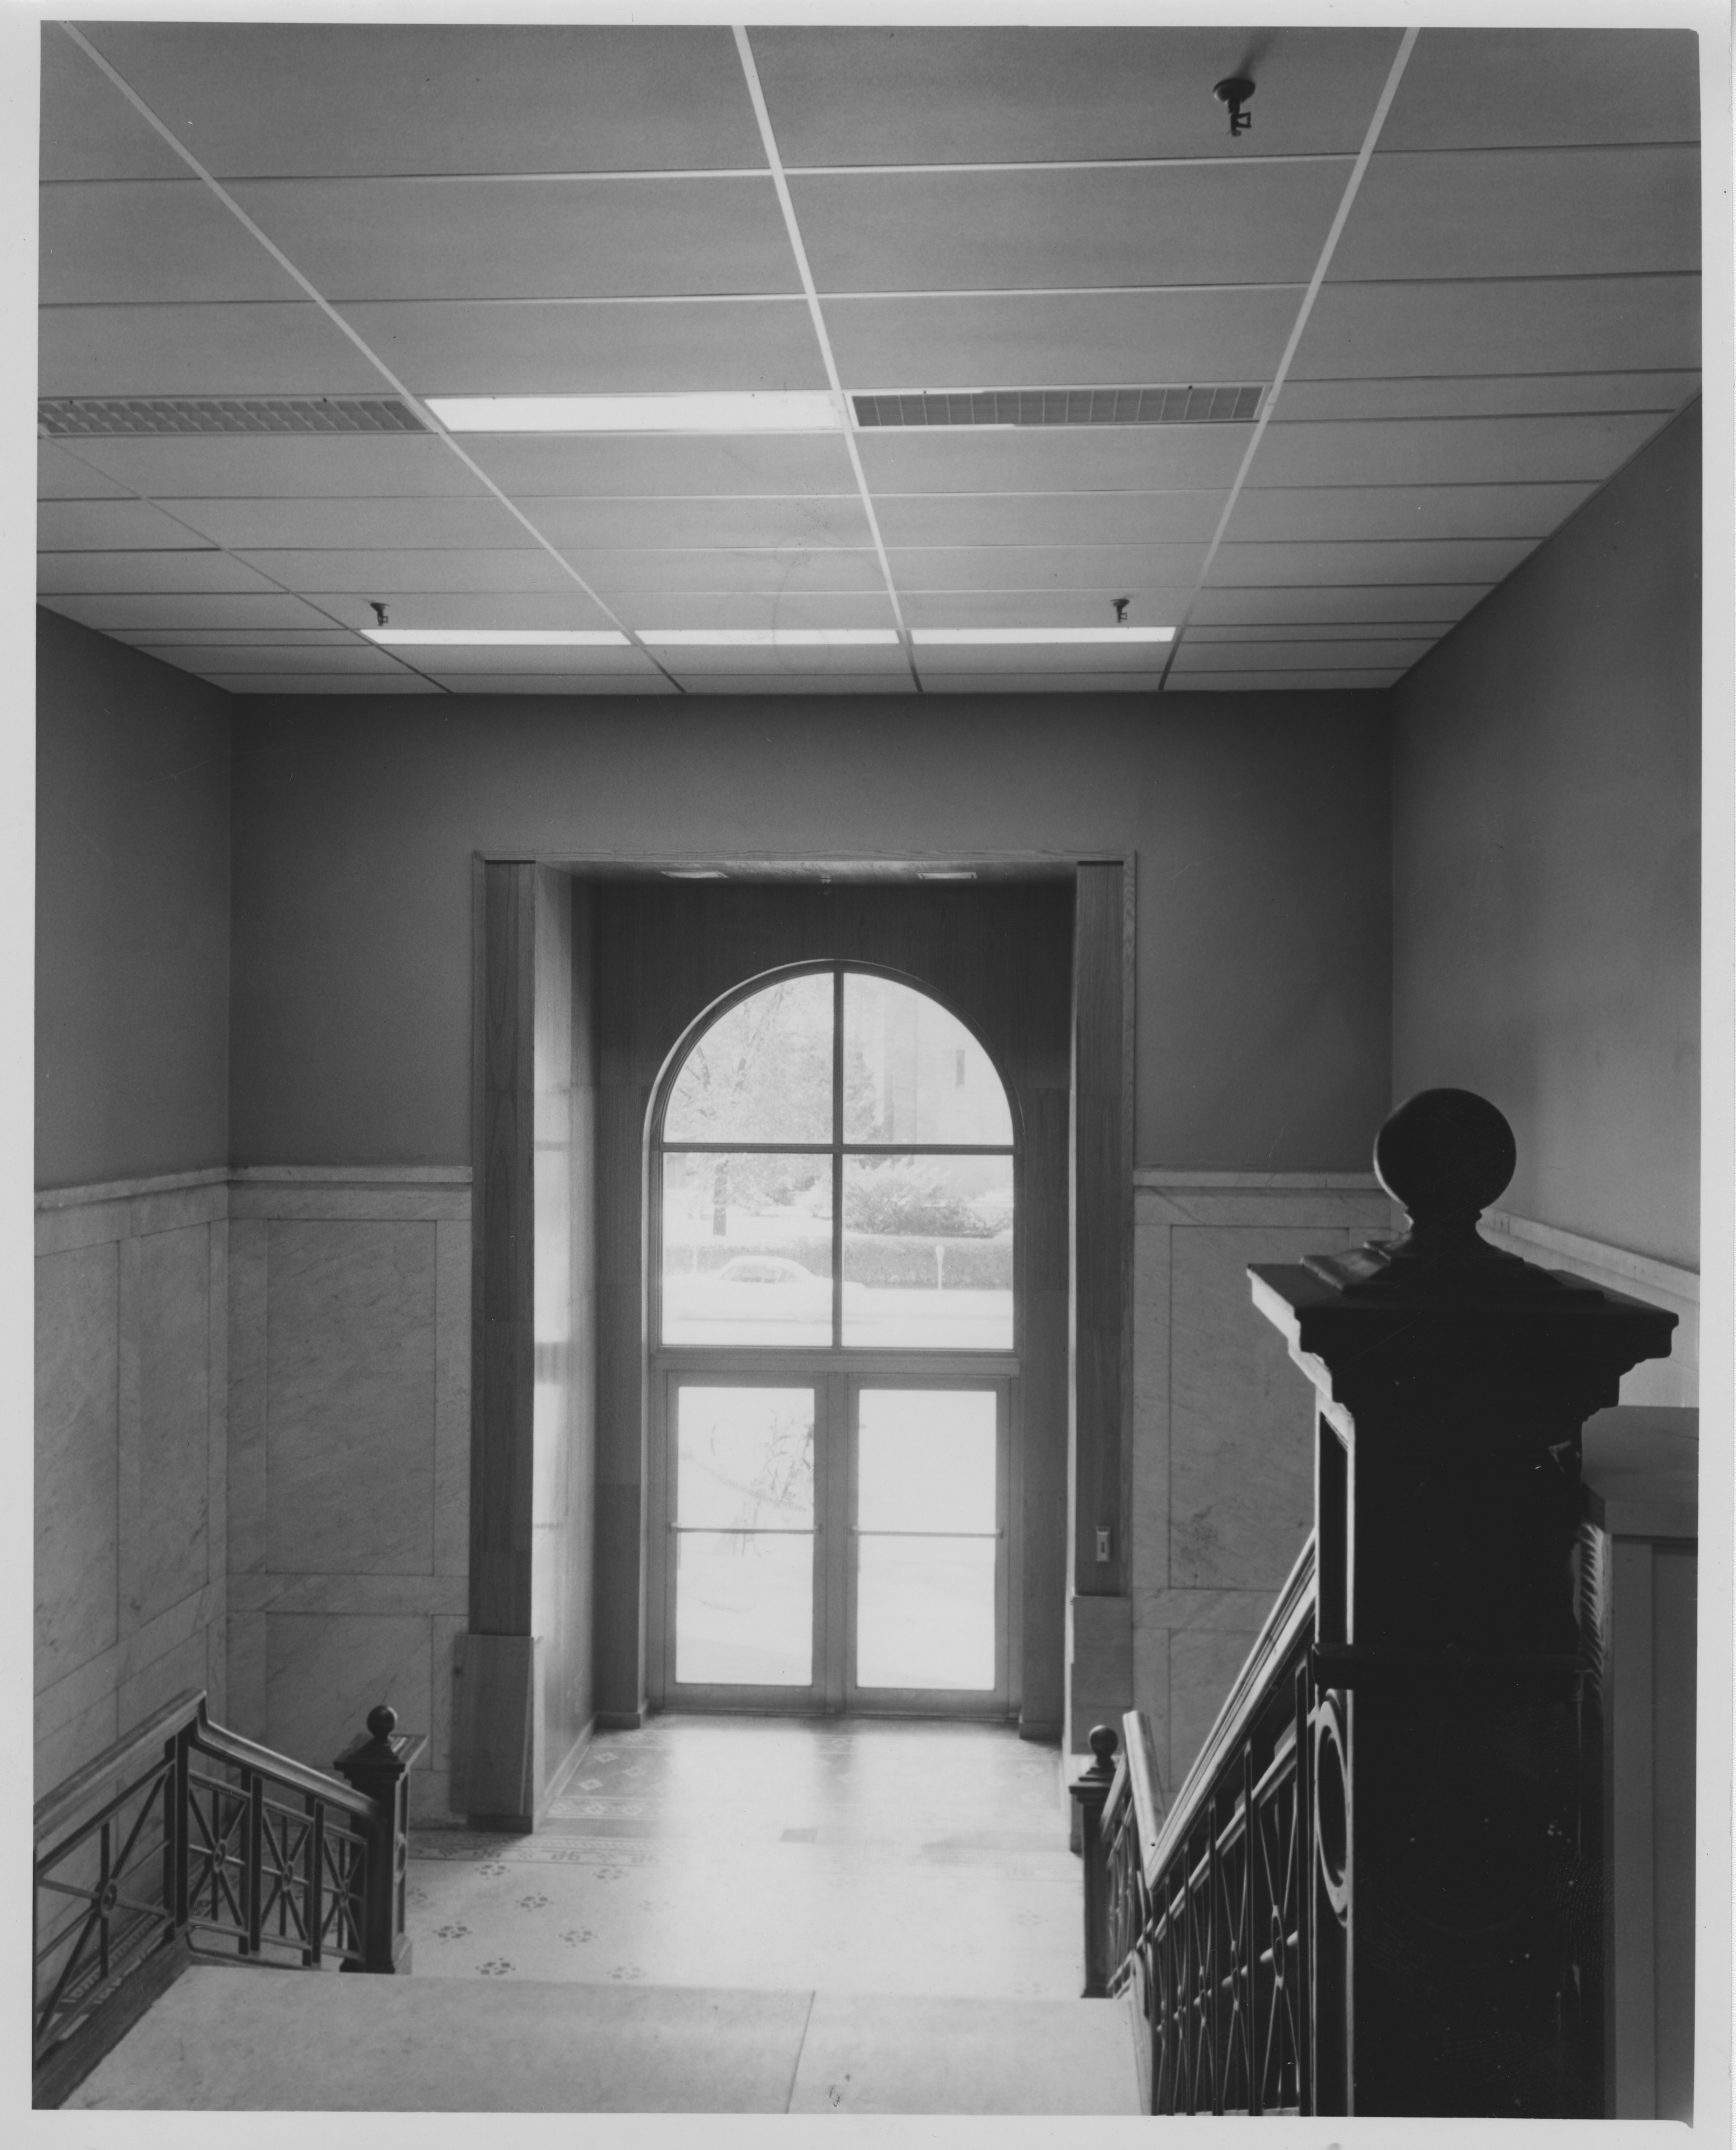 Interior of old Ann Arbor High School, new Frieze Building, October 1957 image